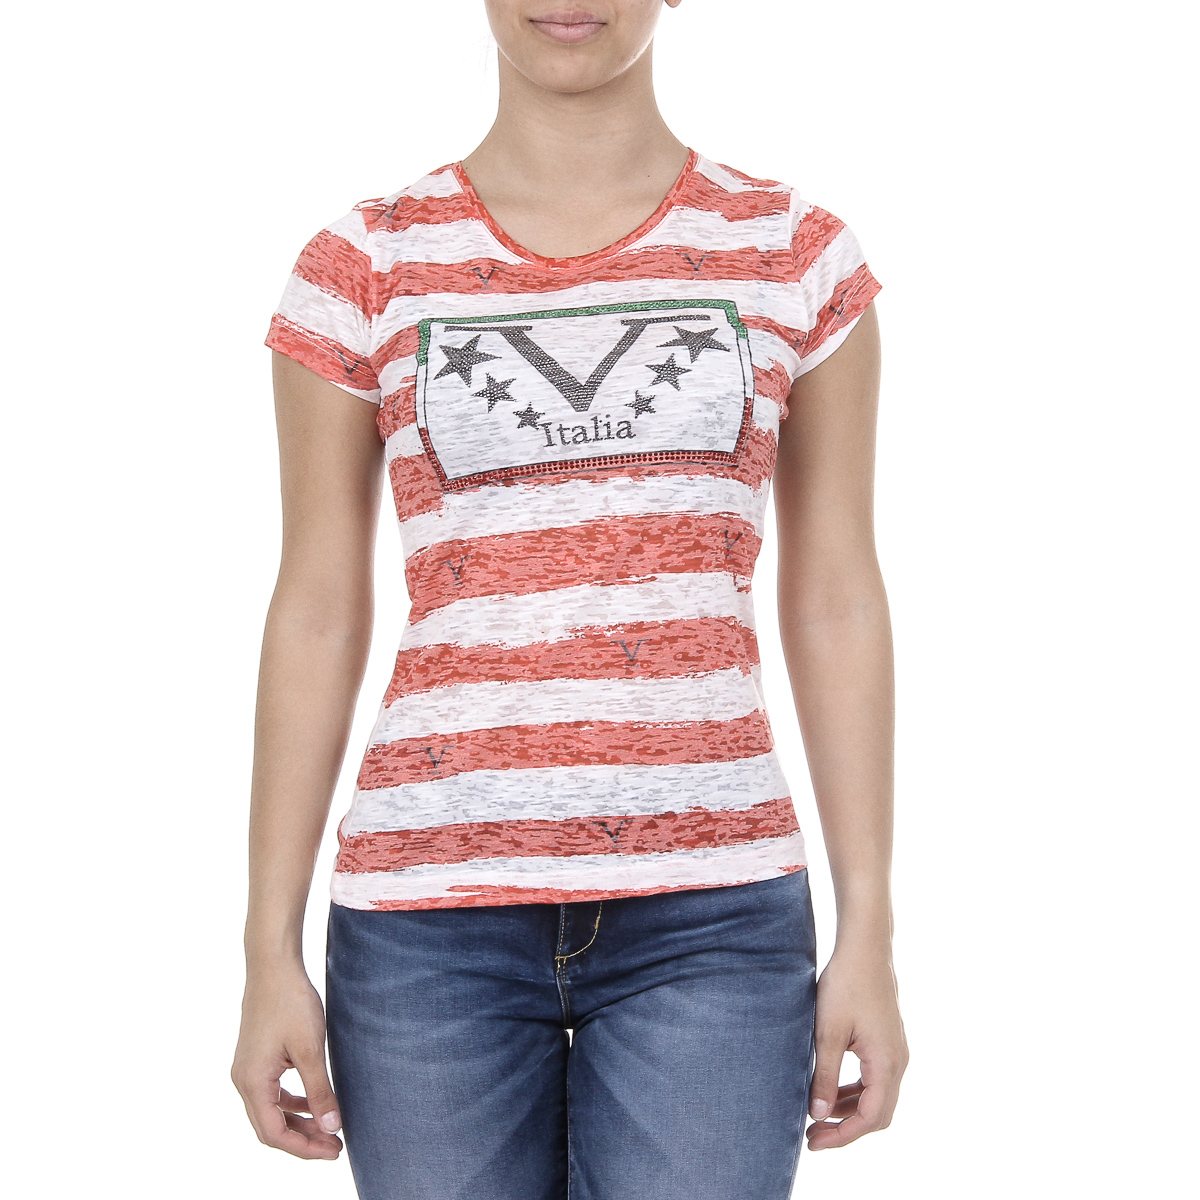 Primary image for V 1969 Italia Womens T-shirt Short Sleeves Round Neck Multicolor CHARLOTTE